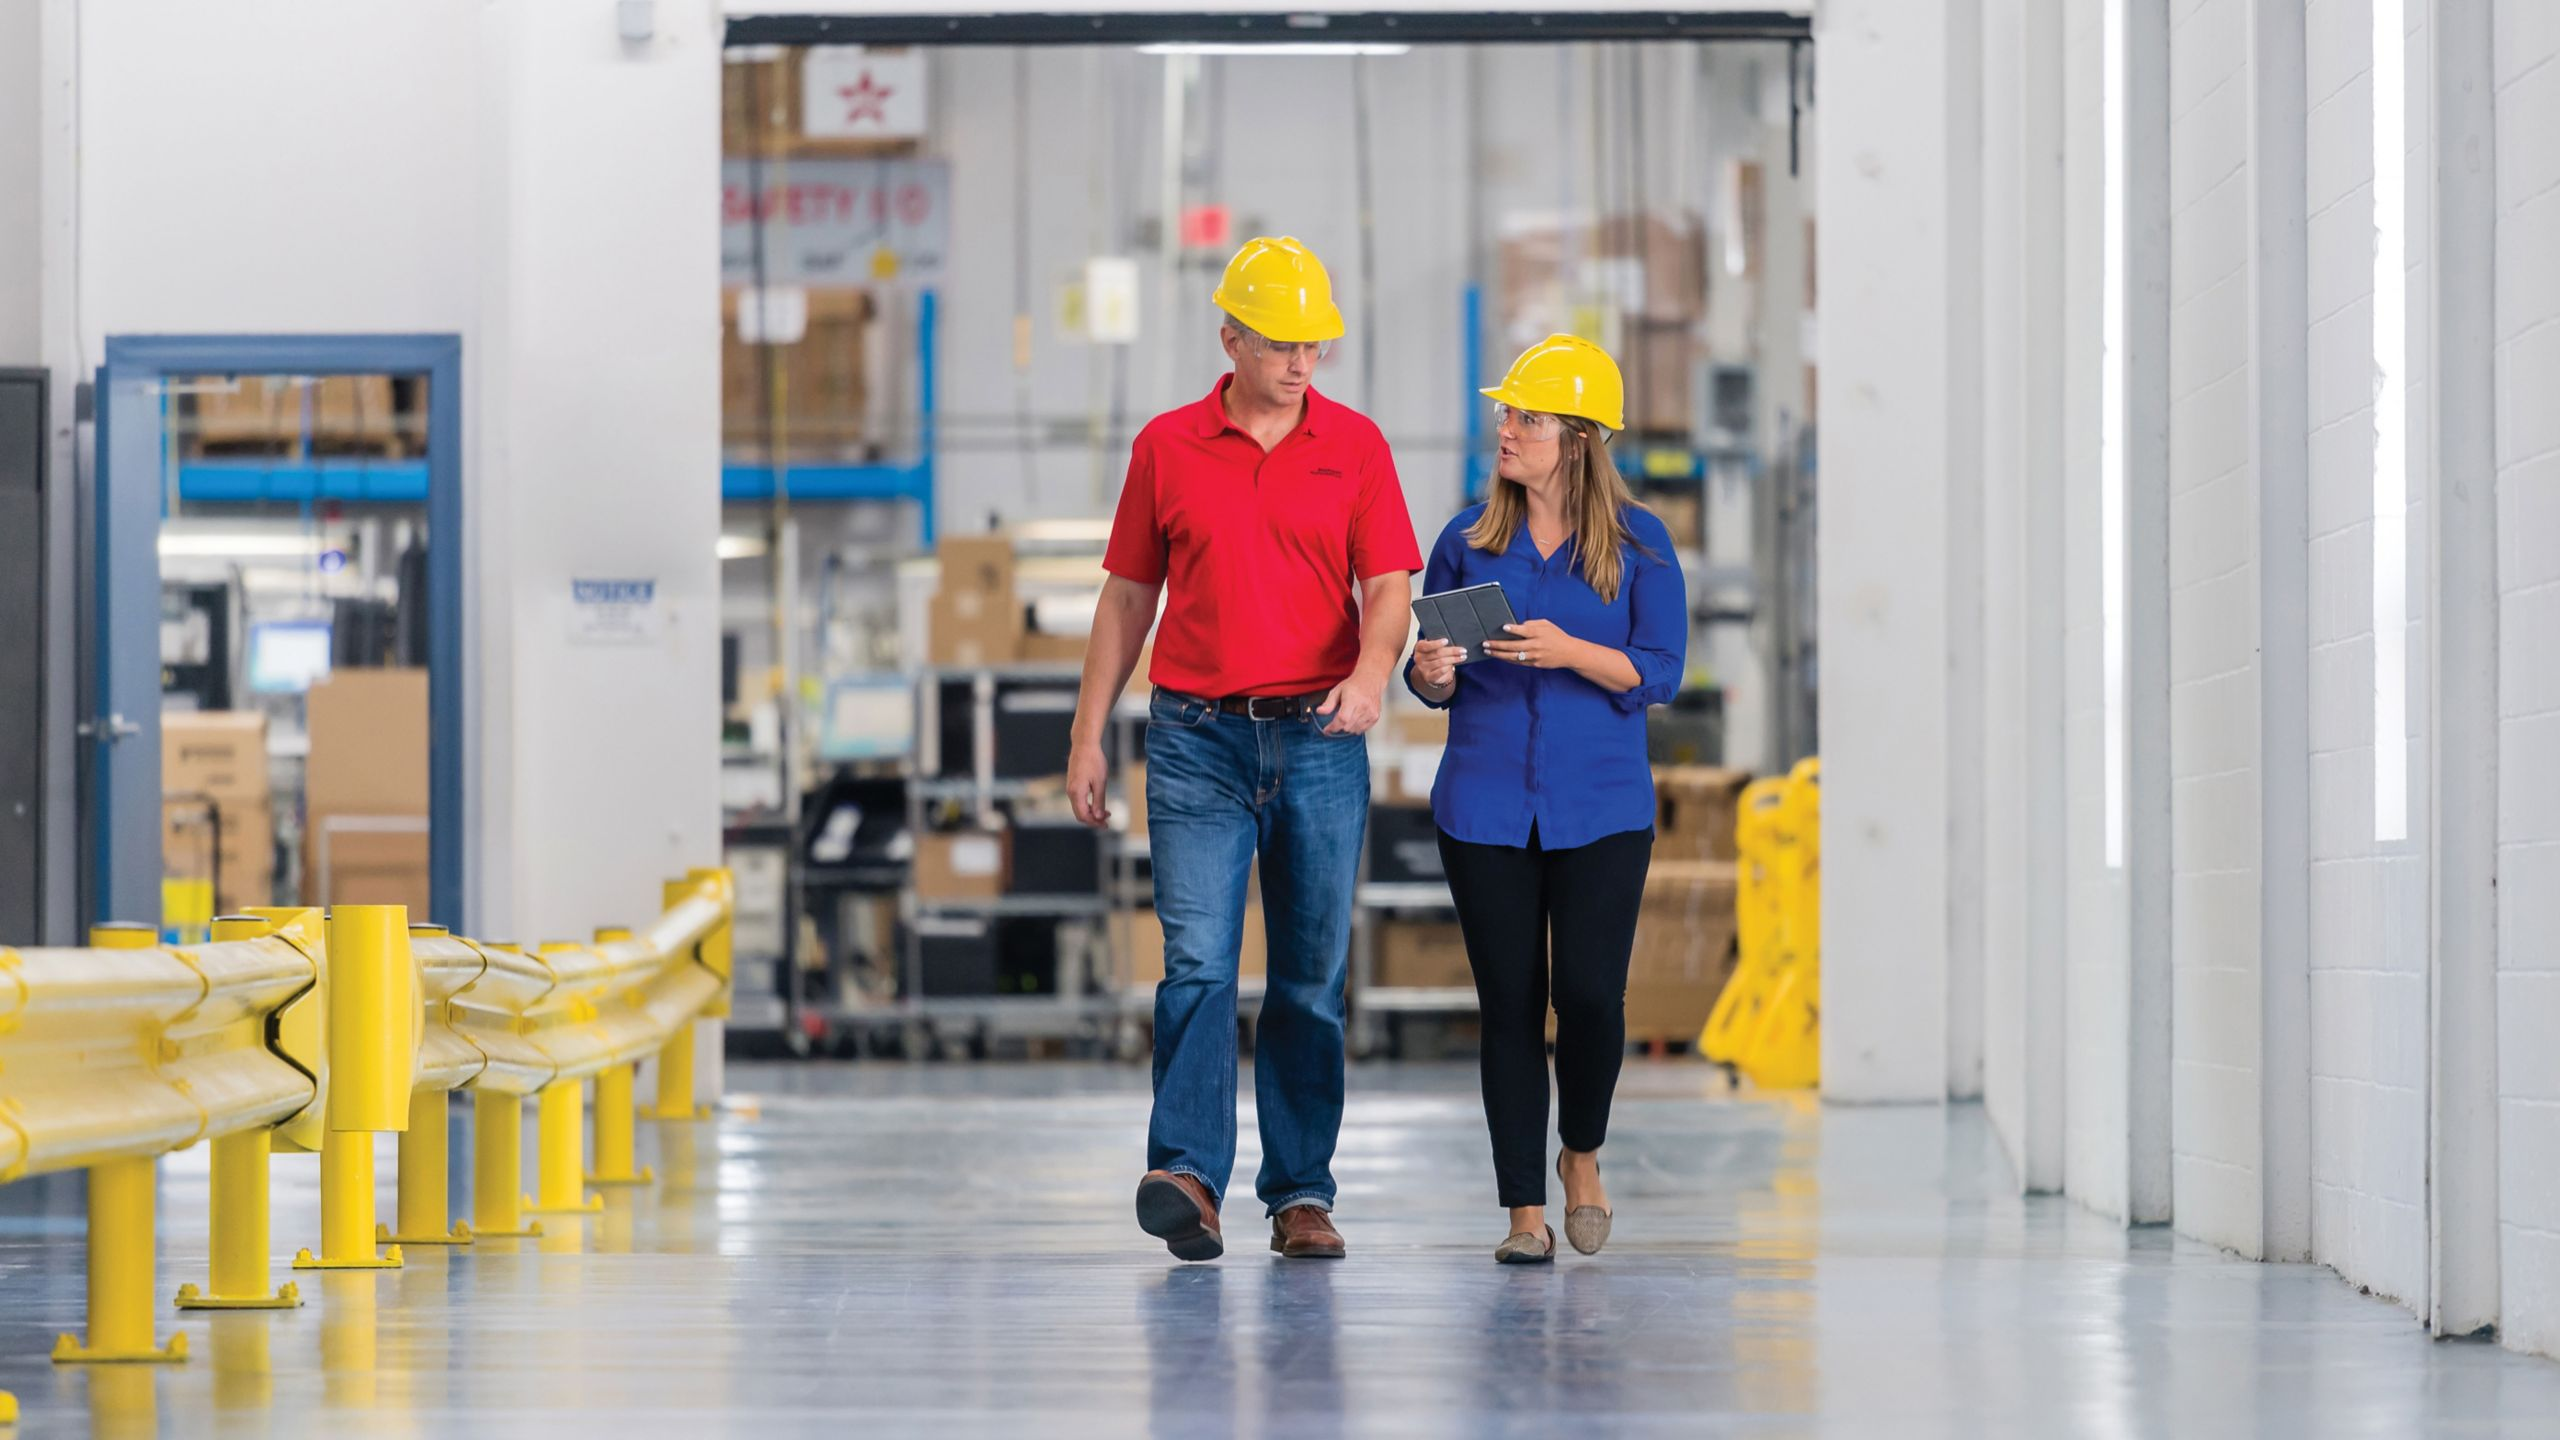 Two employees walking in a plant in deep conversation wearing yellow hard hats